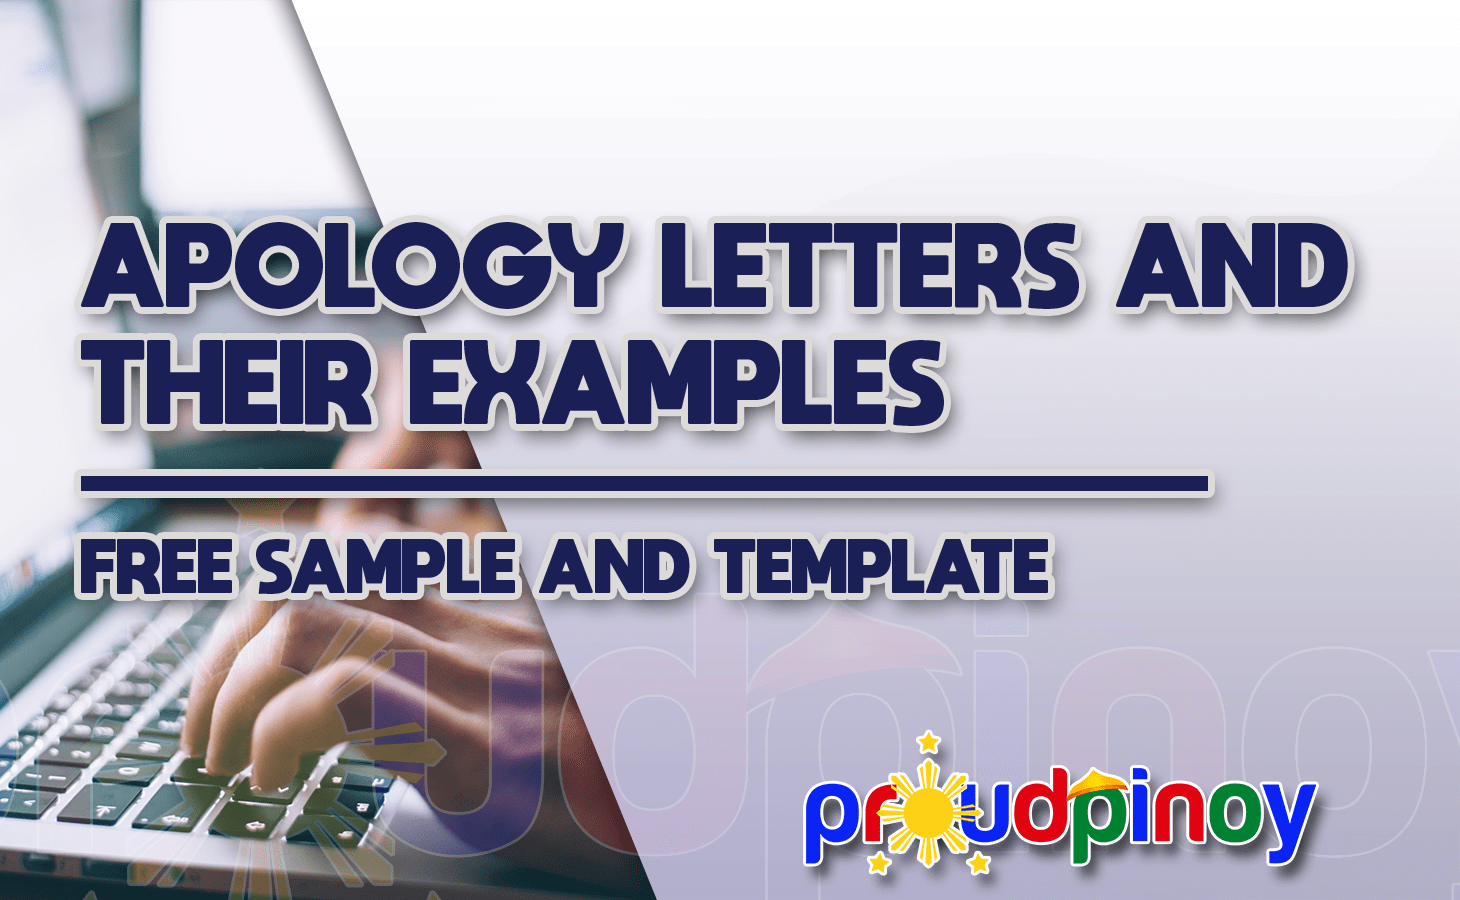 Apology Letters and Their Examples